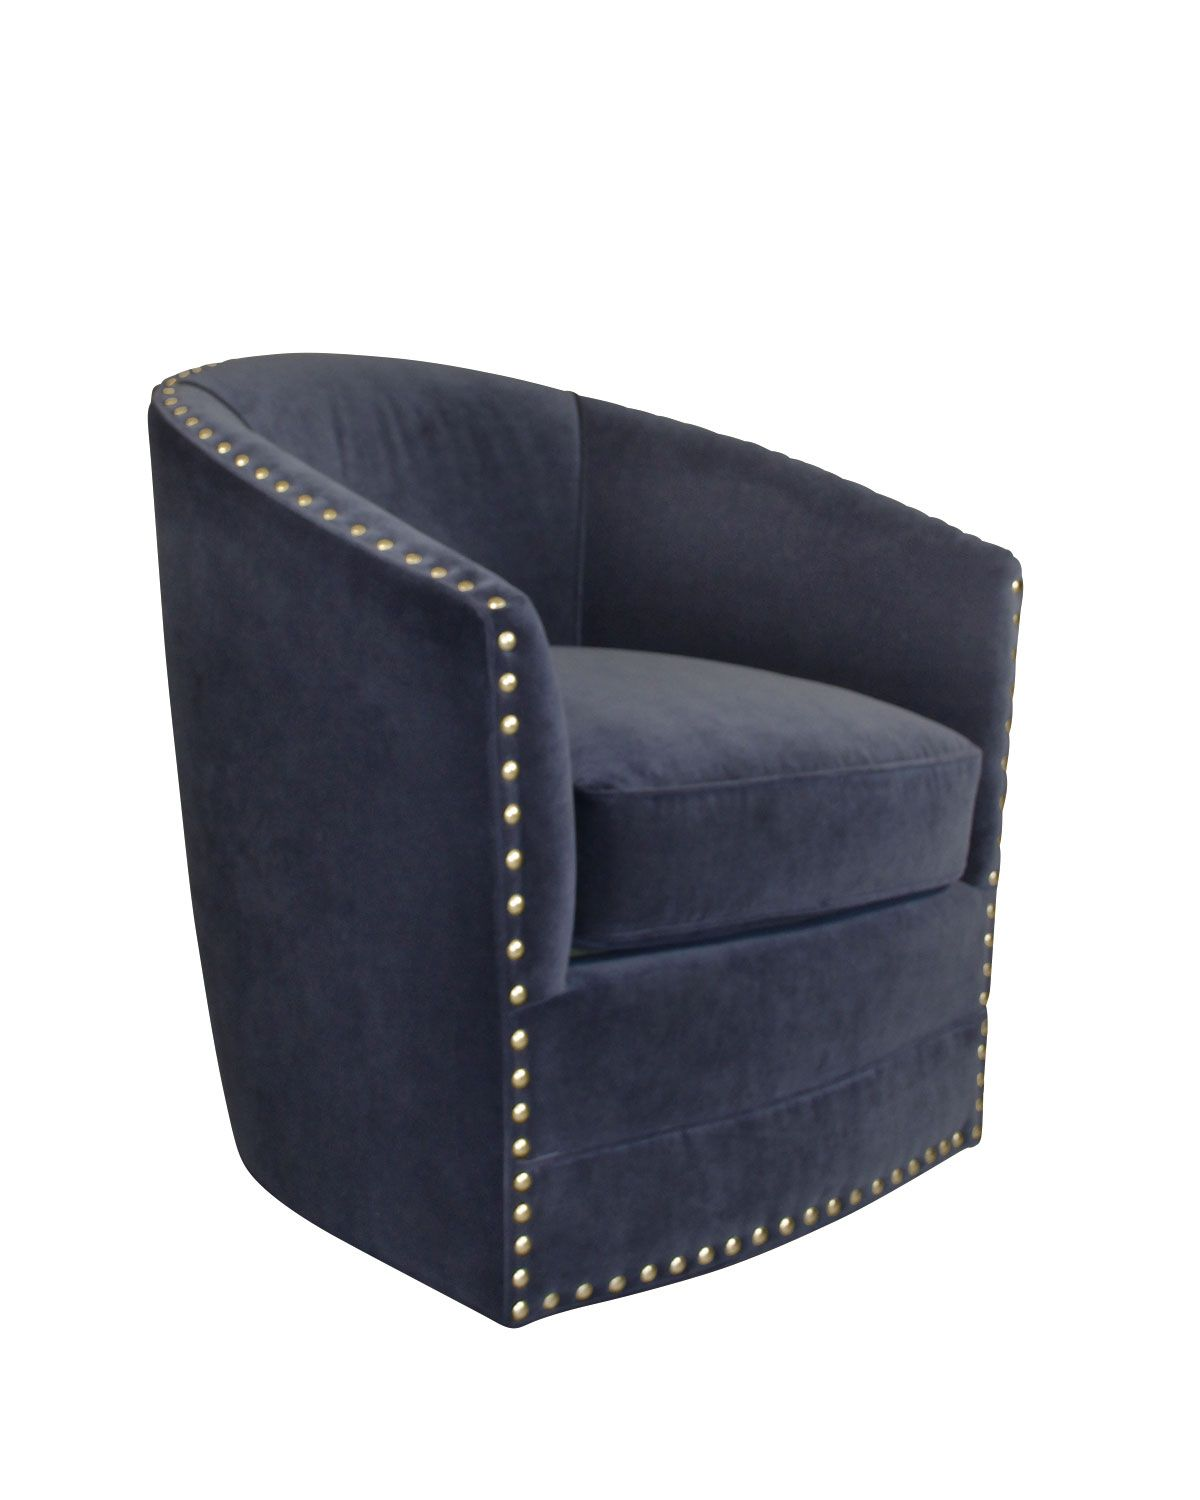 This chair has it allthe freedom of swivel mobility, comfortable seating, and modern good looks. Hardwood frame. Polyester/cotton velvet upholstery. Feather/down cushion. Decorative nailheads outlinin